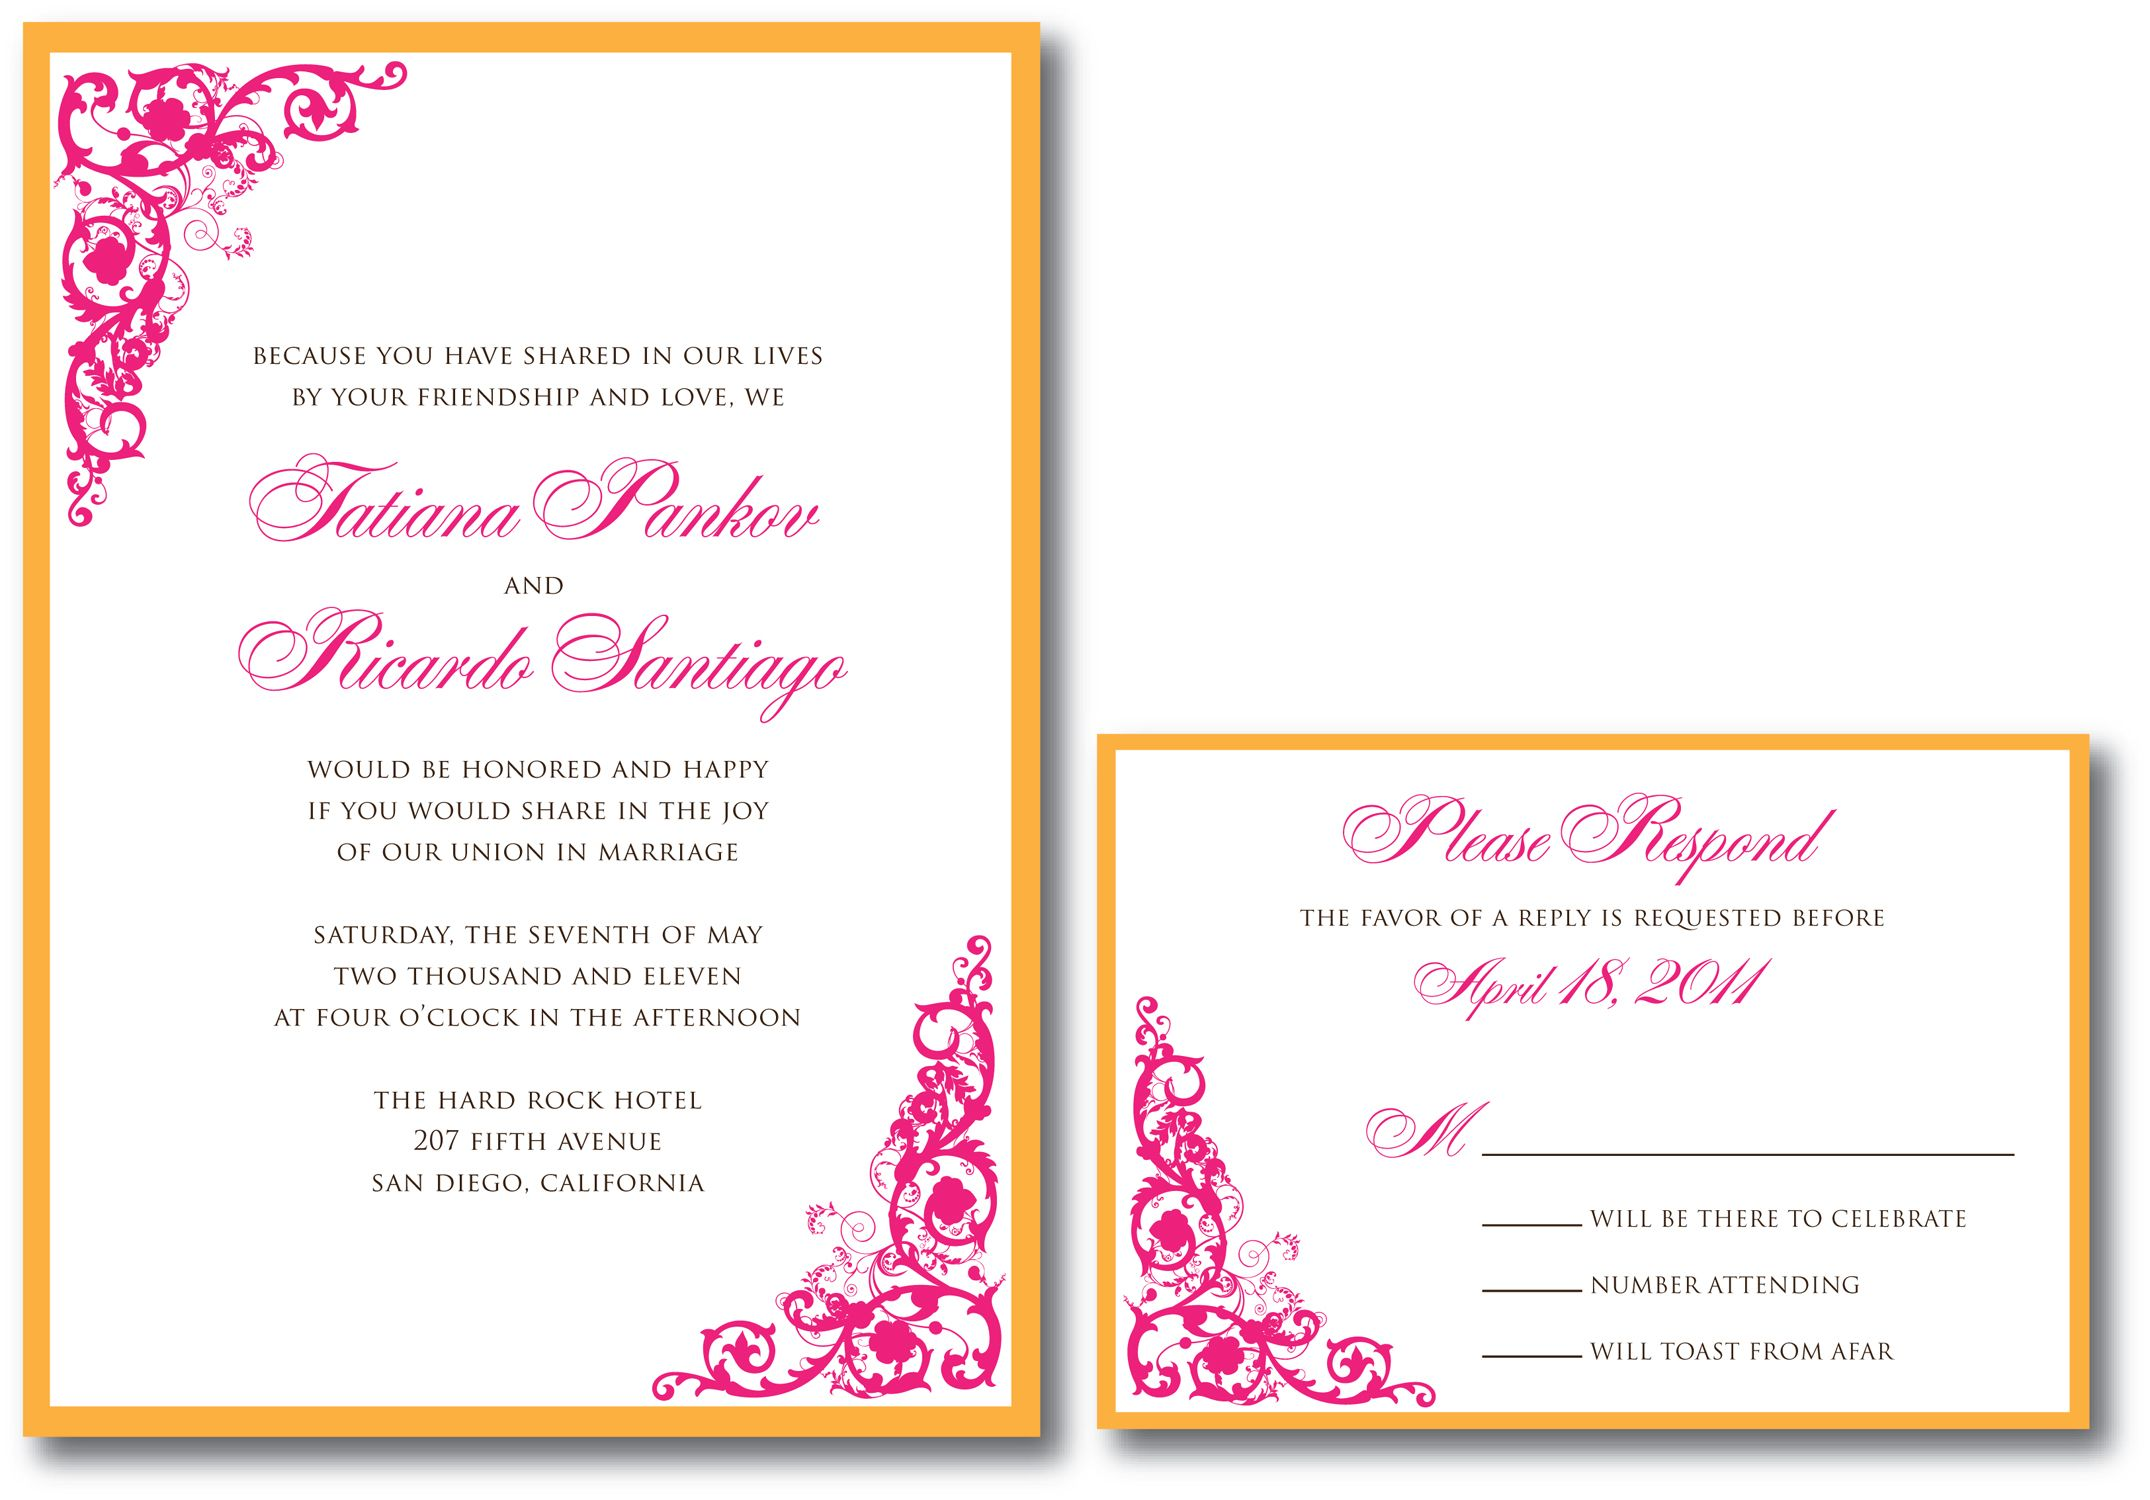 pink and orange wedding invitations | extravagant wedding ...